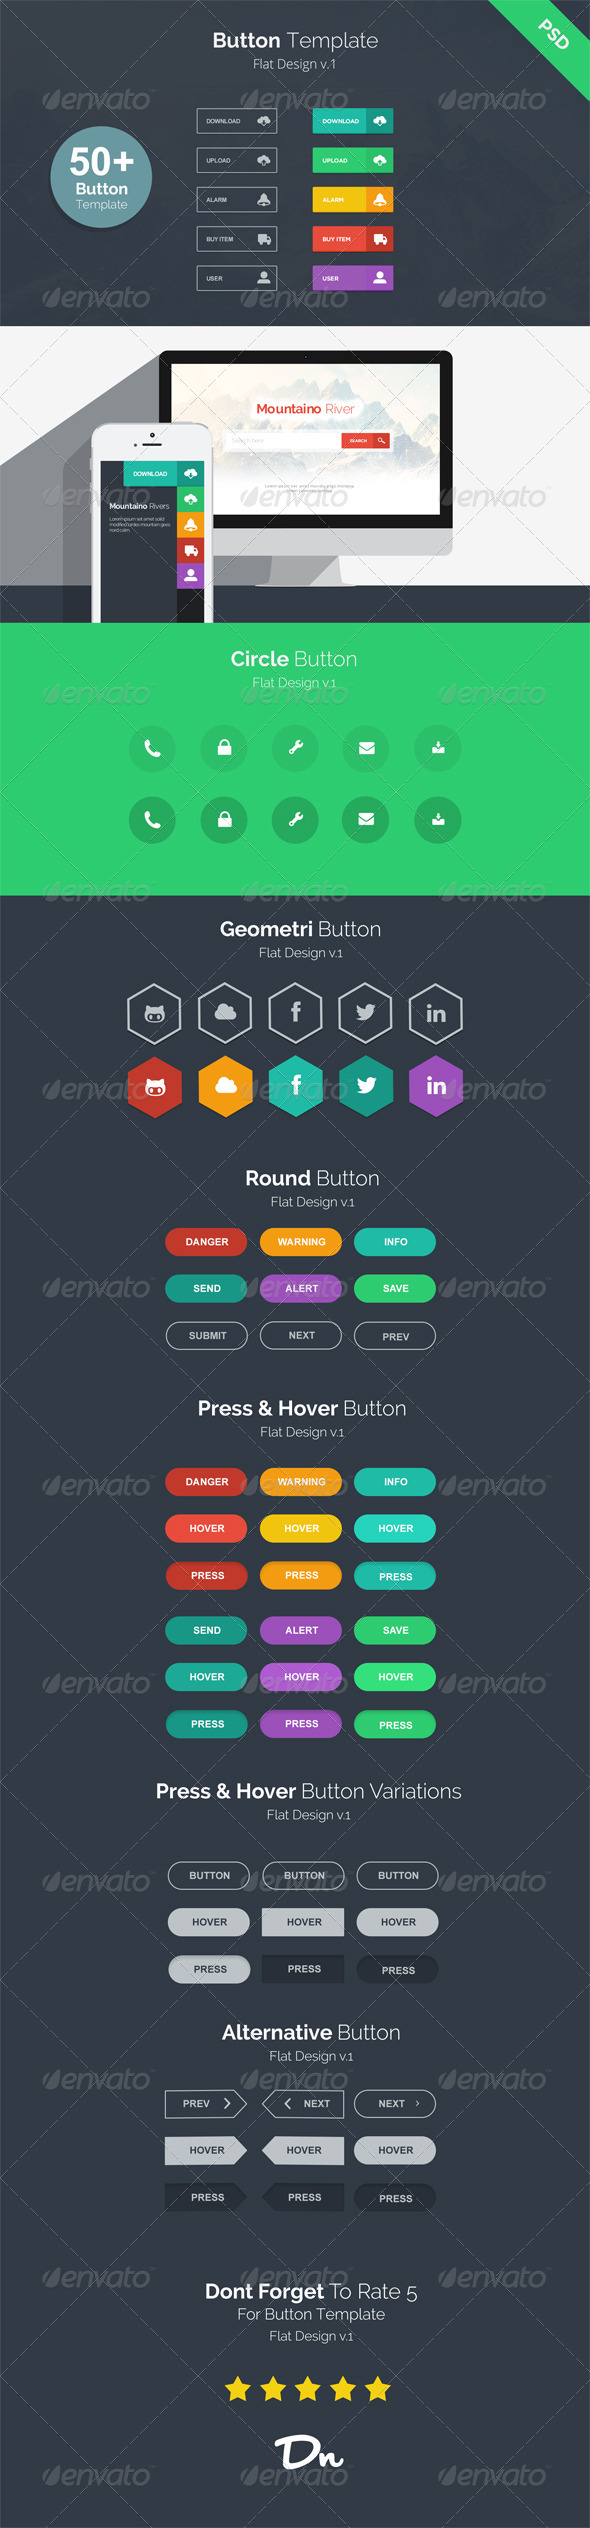 Nice 10 Best Resume Services Thin 10 Minute Resume Rectangular 100 Square Pool Template 12 Hour Schedule Template Old 12 Inch Ruler Template Brown16 Oz Tumbler Template 25  Web Button Design PSD